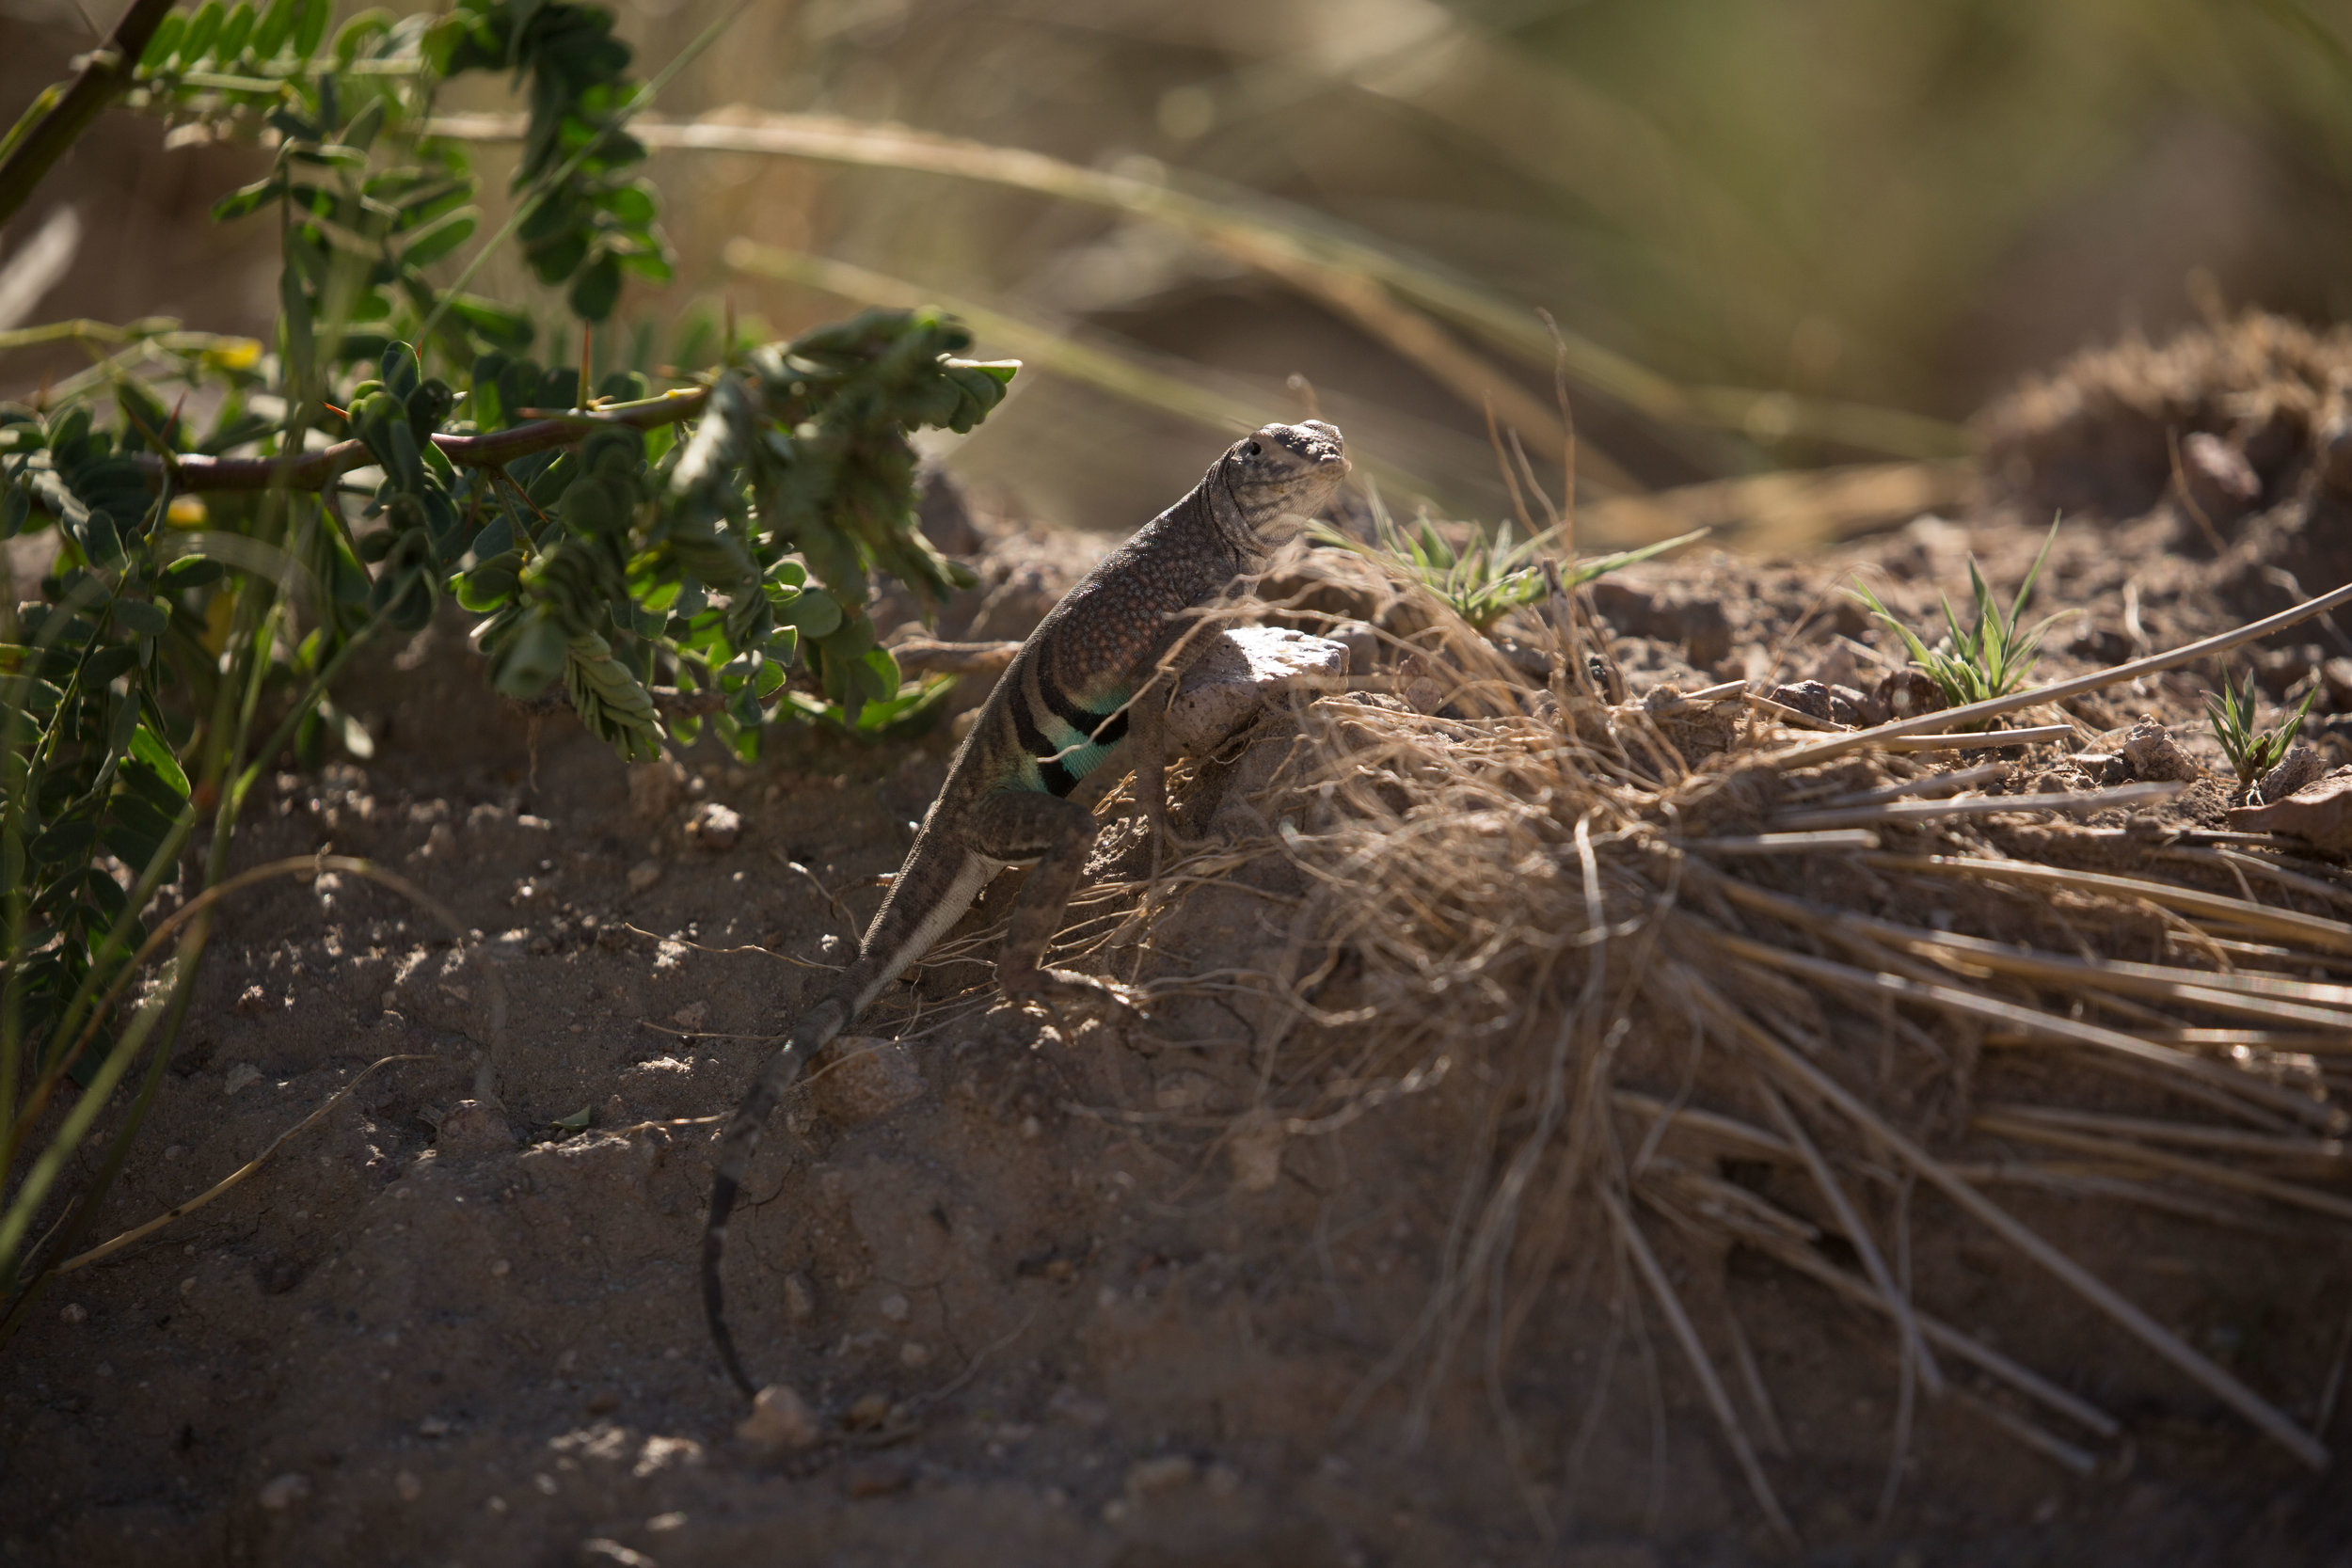 A male greater earless lizard hiding its bright colors in the shade